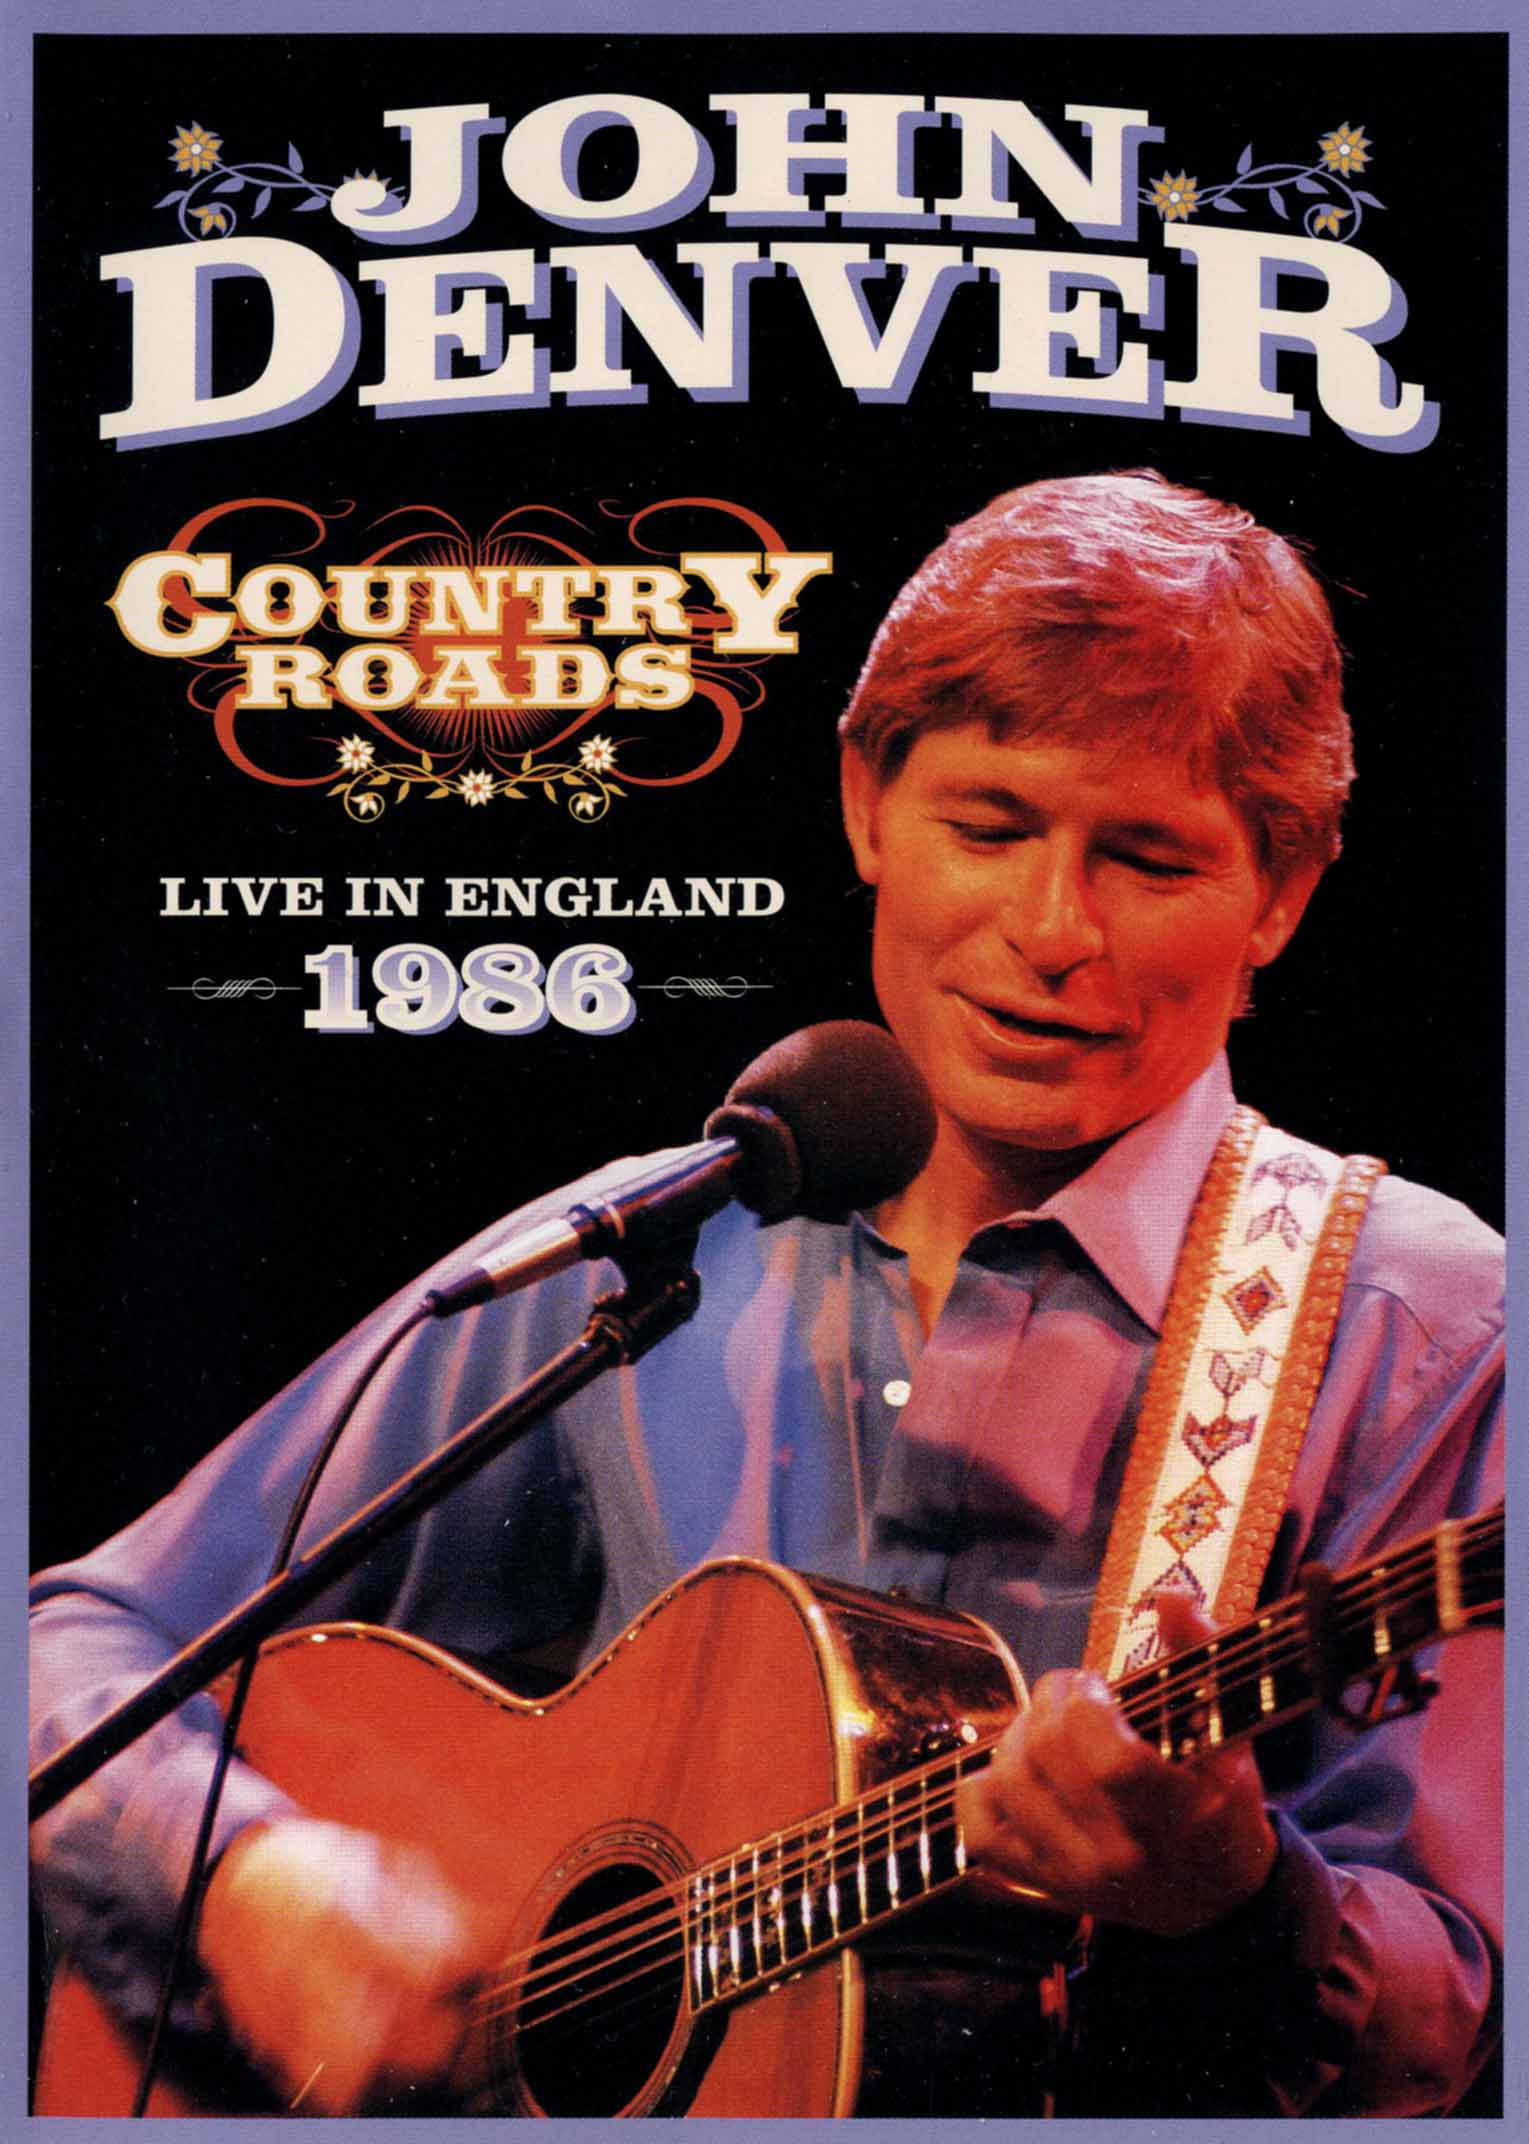 John Denver: Country Roads - Live in England 1986